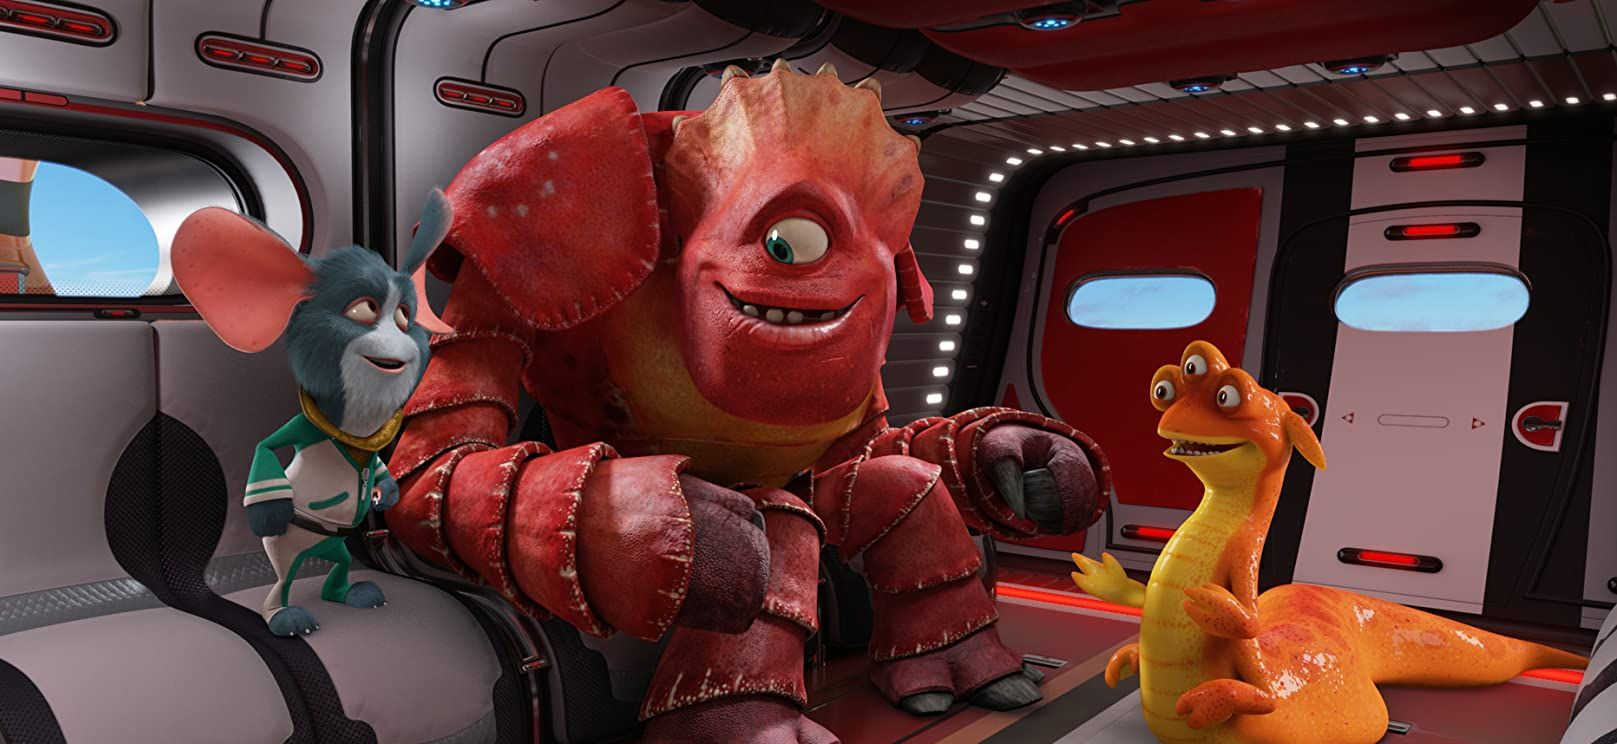 Doc (Voiced by Craig Robinson), Io (voiced by Jane Lynch) and Thurman (voiced by George Lopez) in Escape from Planet Earth (2013)